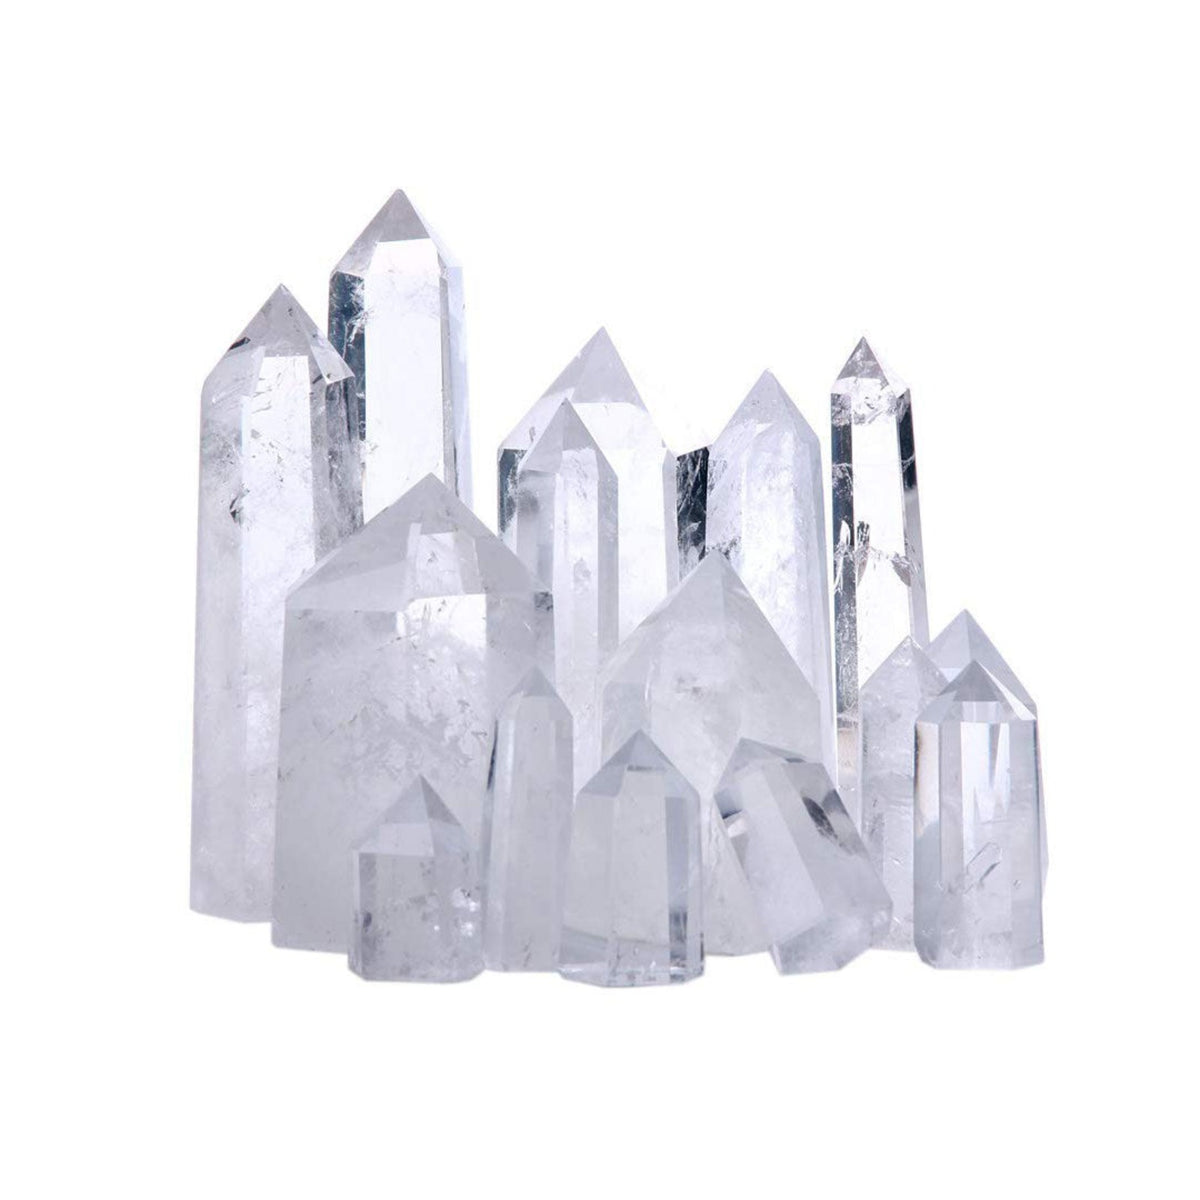 Clear Quartz Crystal Towers - AMANDA PEARL